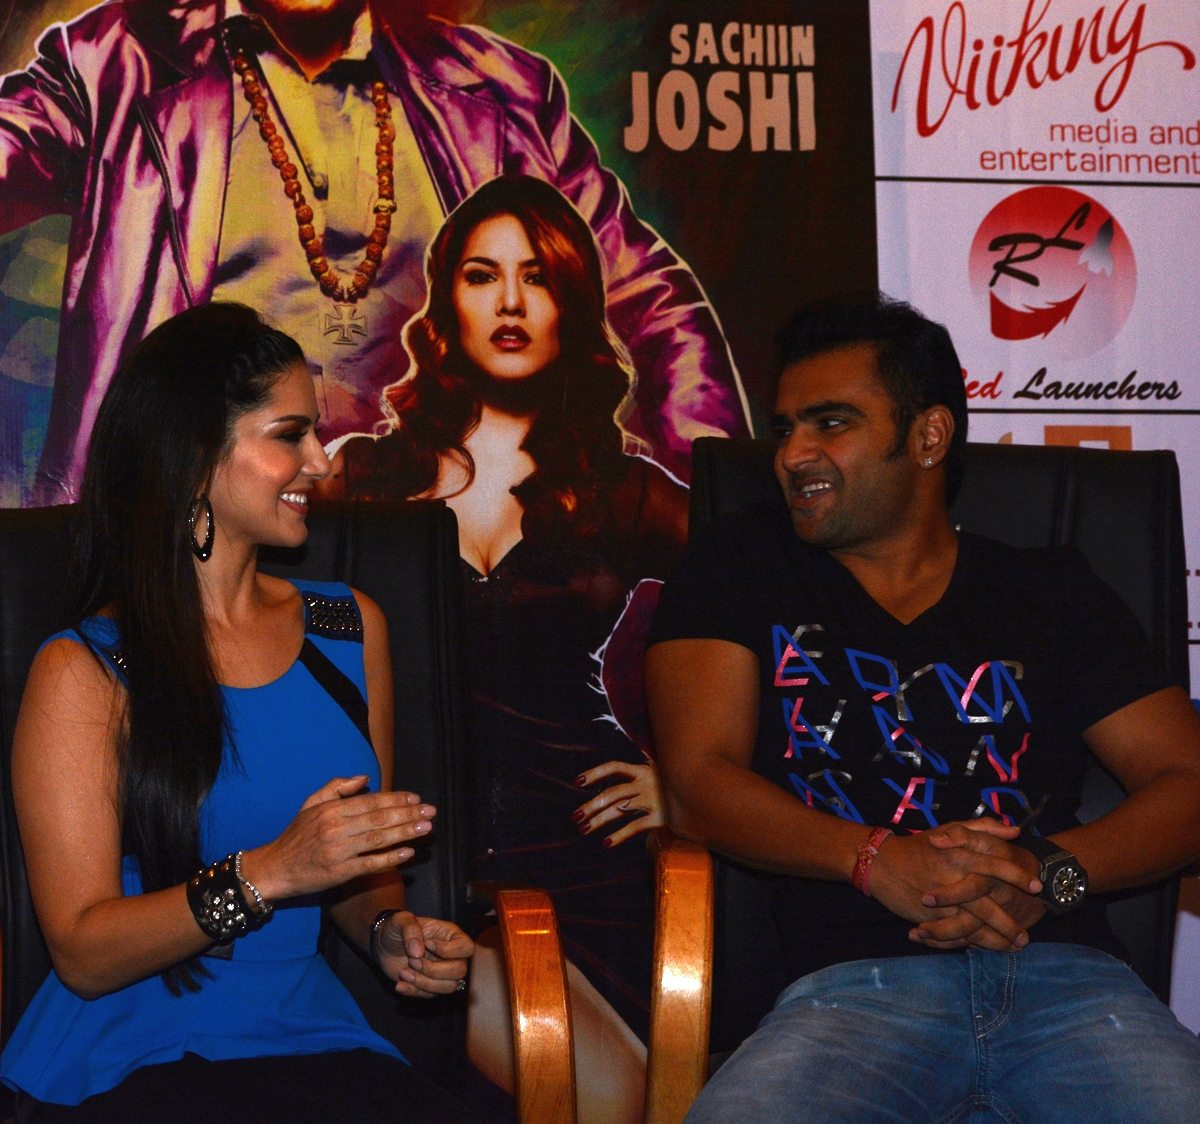 Sunny Leone and Sachiin Joshi share a moment at Jackpot press con